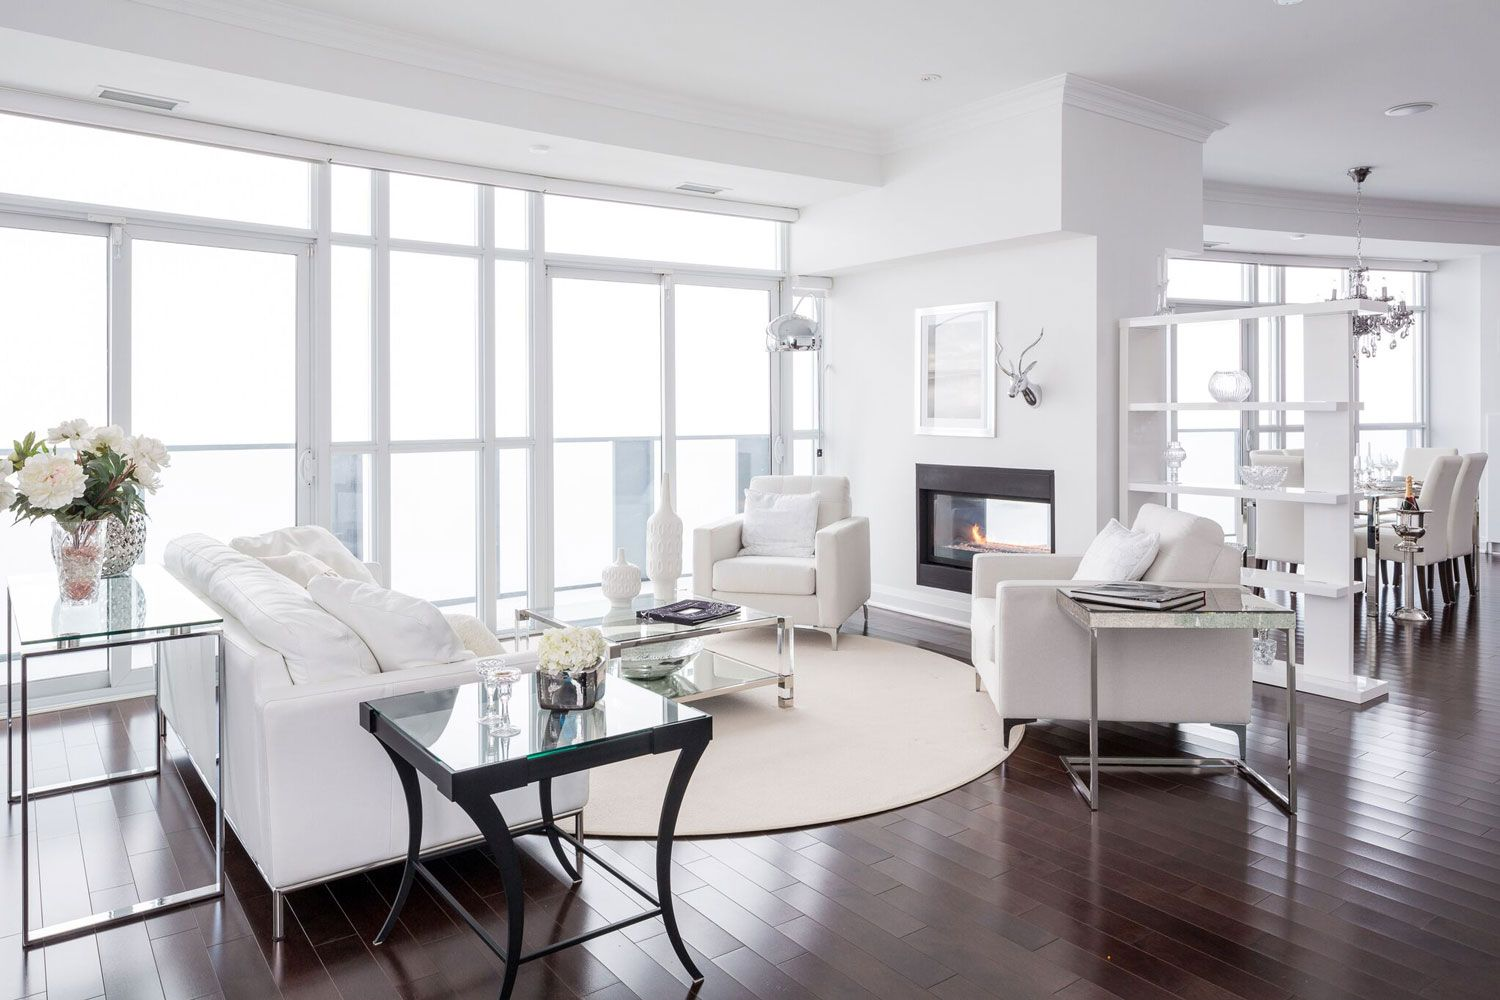 Modern Glamorous Condo Project in the Heart of Mississauga Nicola